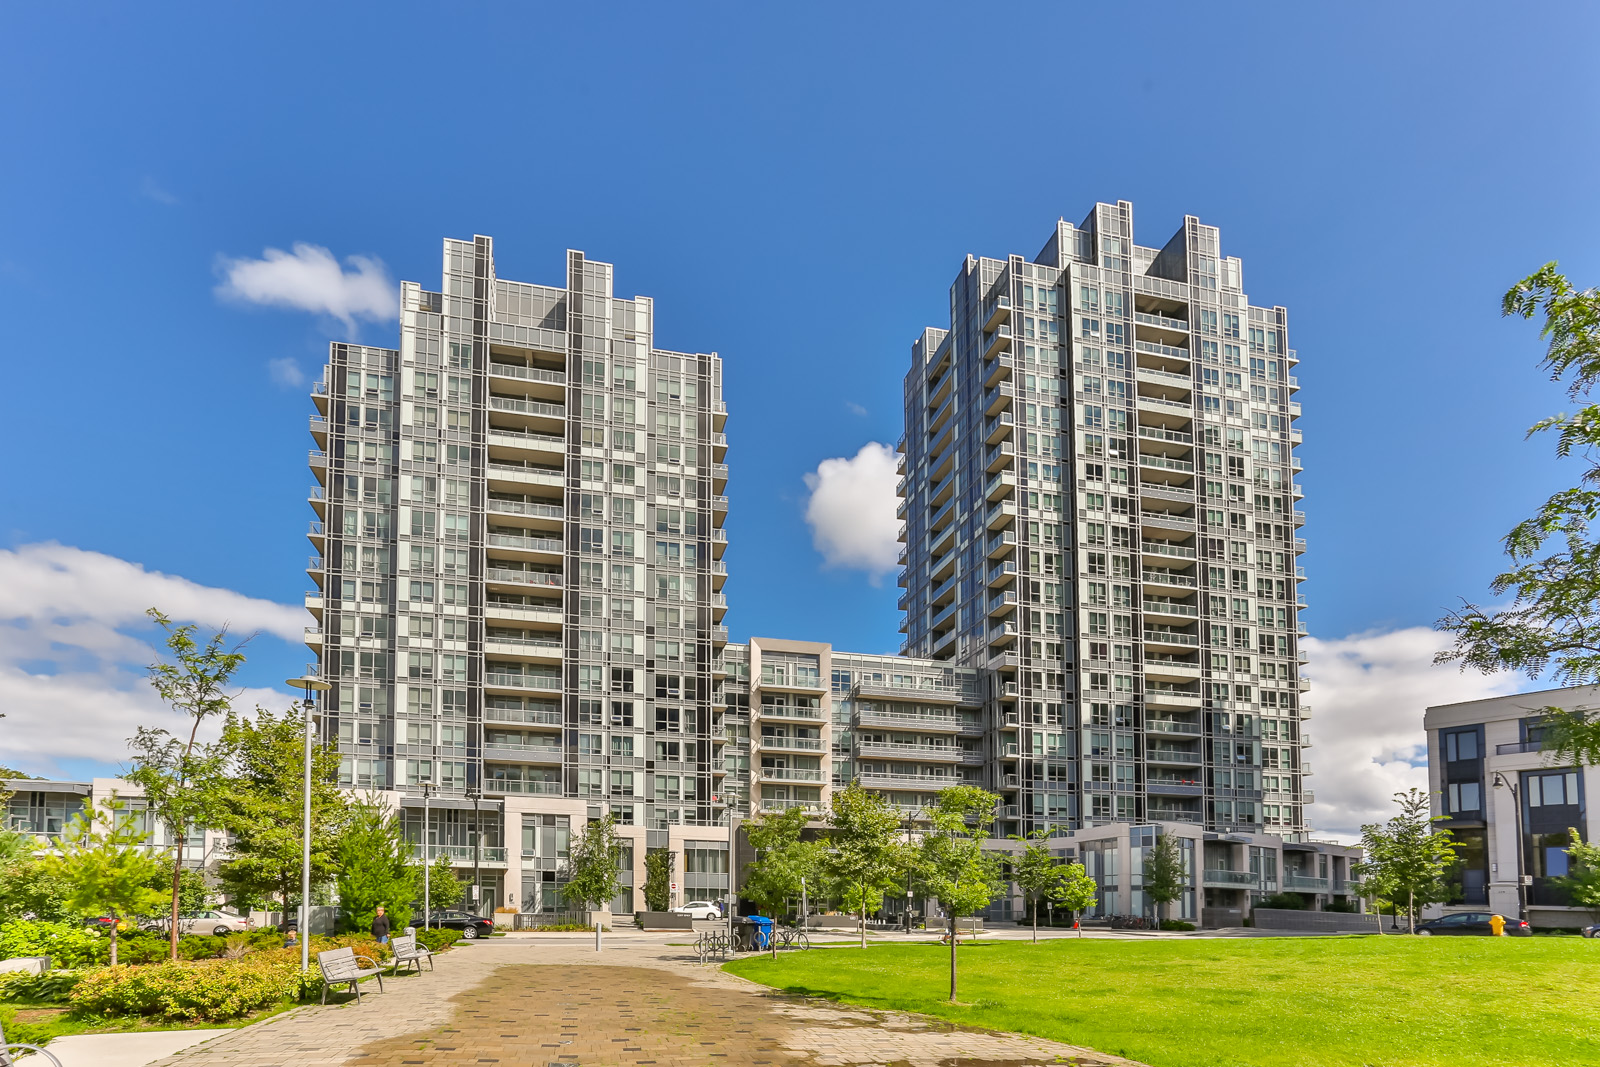 Outside photo of Aristo at Avonshire condos at 120 Harrison Garden Blvd in North York, Toronto